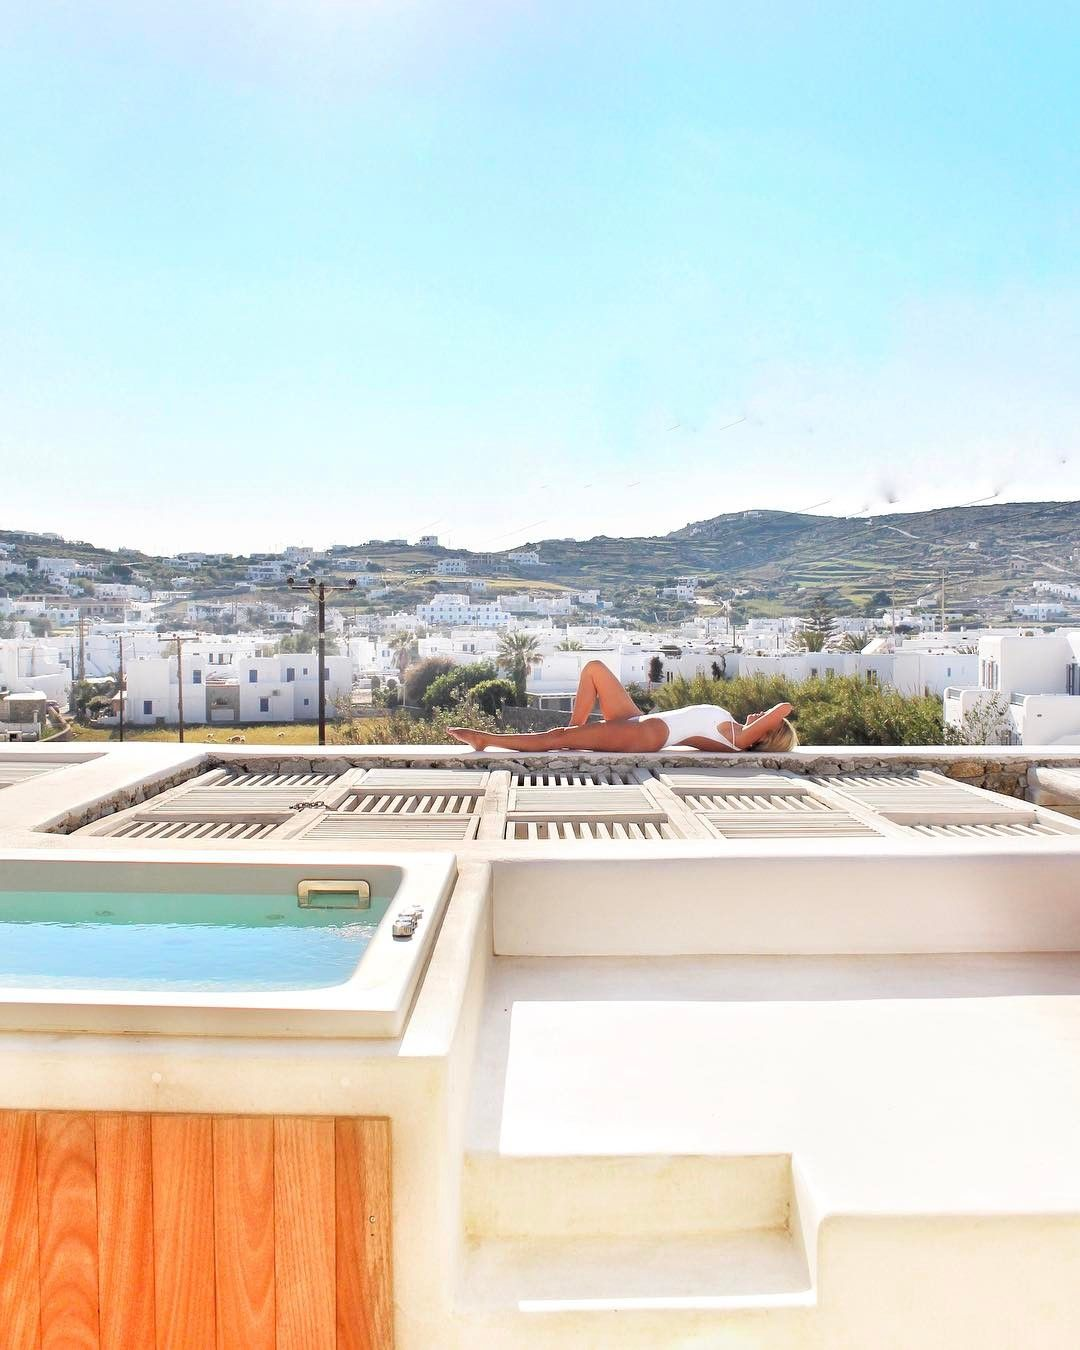 High Quality Happy Earth Day From Mykonos! Rooftop Views From My Jacuzzi Terrace At The  New Luxury .